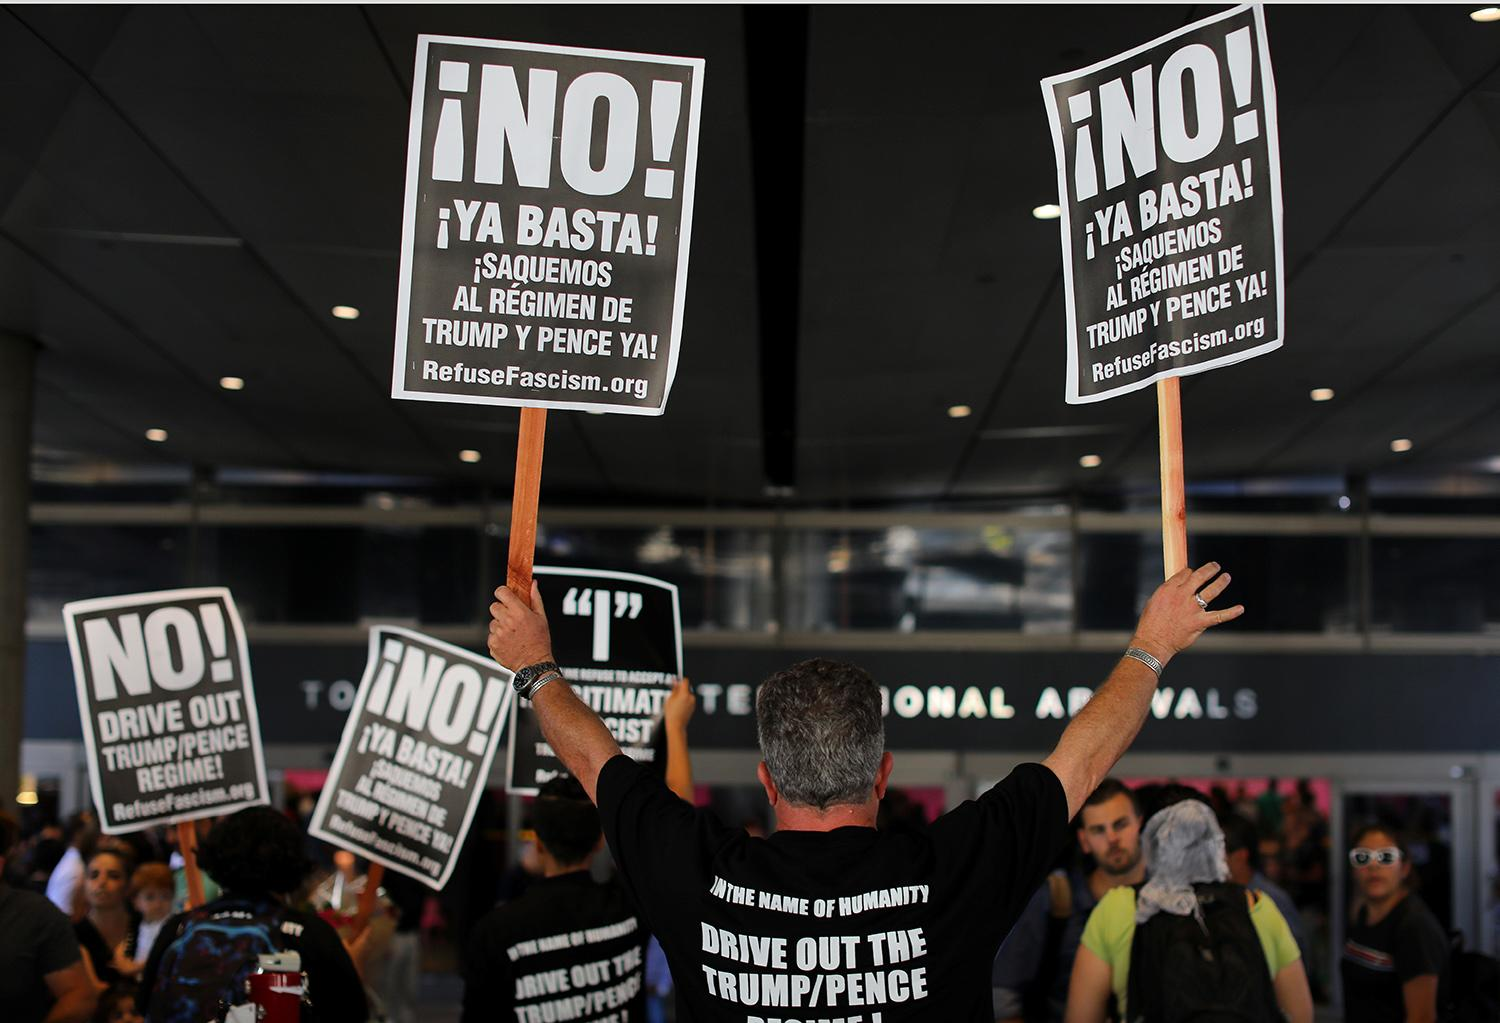 <p>Protesters rally at Los Angeles International Airport to demonstrate against the reinstatement by the U.S. Supreme Court of portions of President Donald Trump's executive order targeting travellers from six predominantly Muslim countries, in Los Angeles, California, U.S., June 29, 2017. (Mike Blake/Reuters) </p>